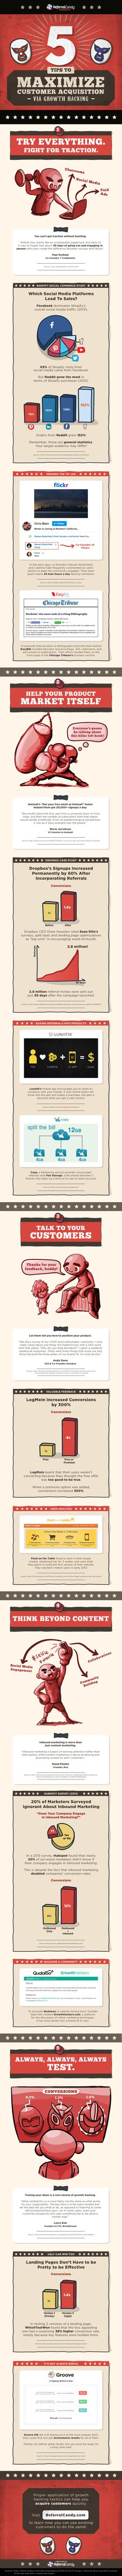 5 Tips To Maximize Customer Acquisition Via Growth Hacking [Infographic] Digital Marketing Strategy, Social Marketing, Content Marketing, Internet Marketing, Affiliate Marketing, Info Board, Ignorance, Growth Hacking, Marketing Techniques